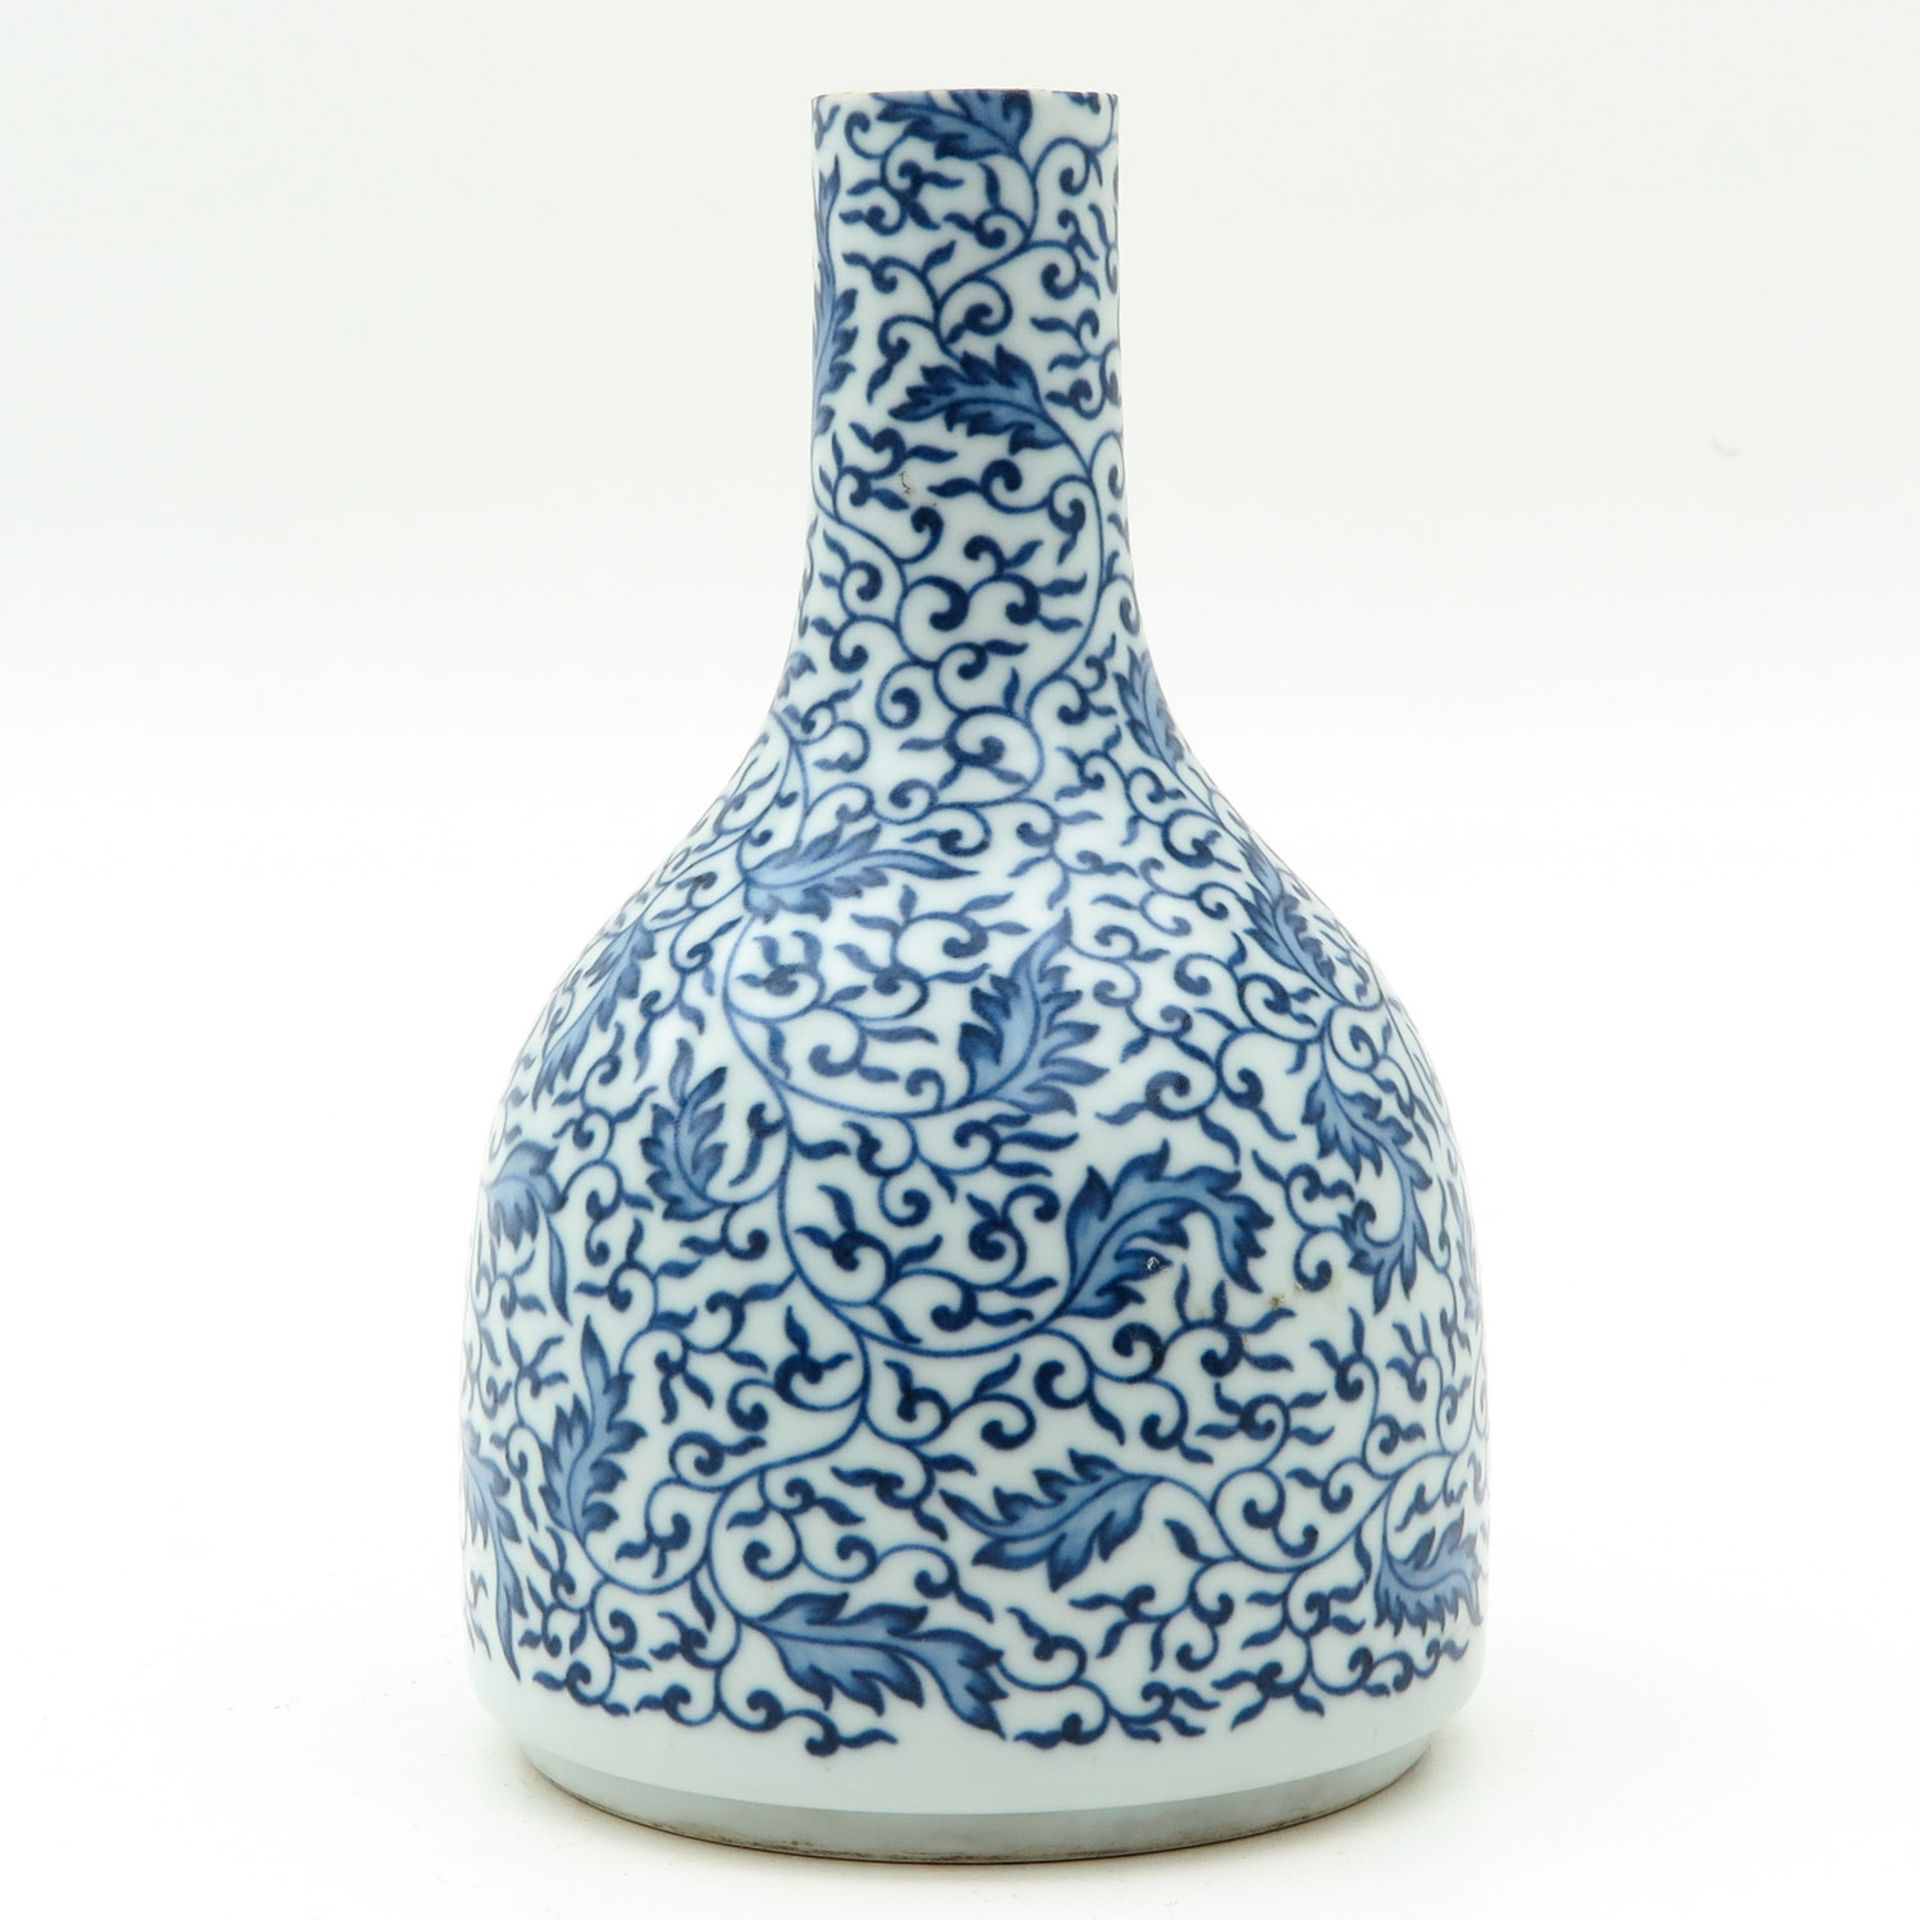 Los 7041 - A Blue and White Vase